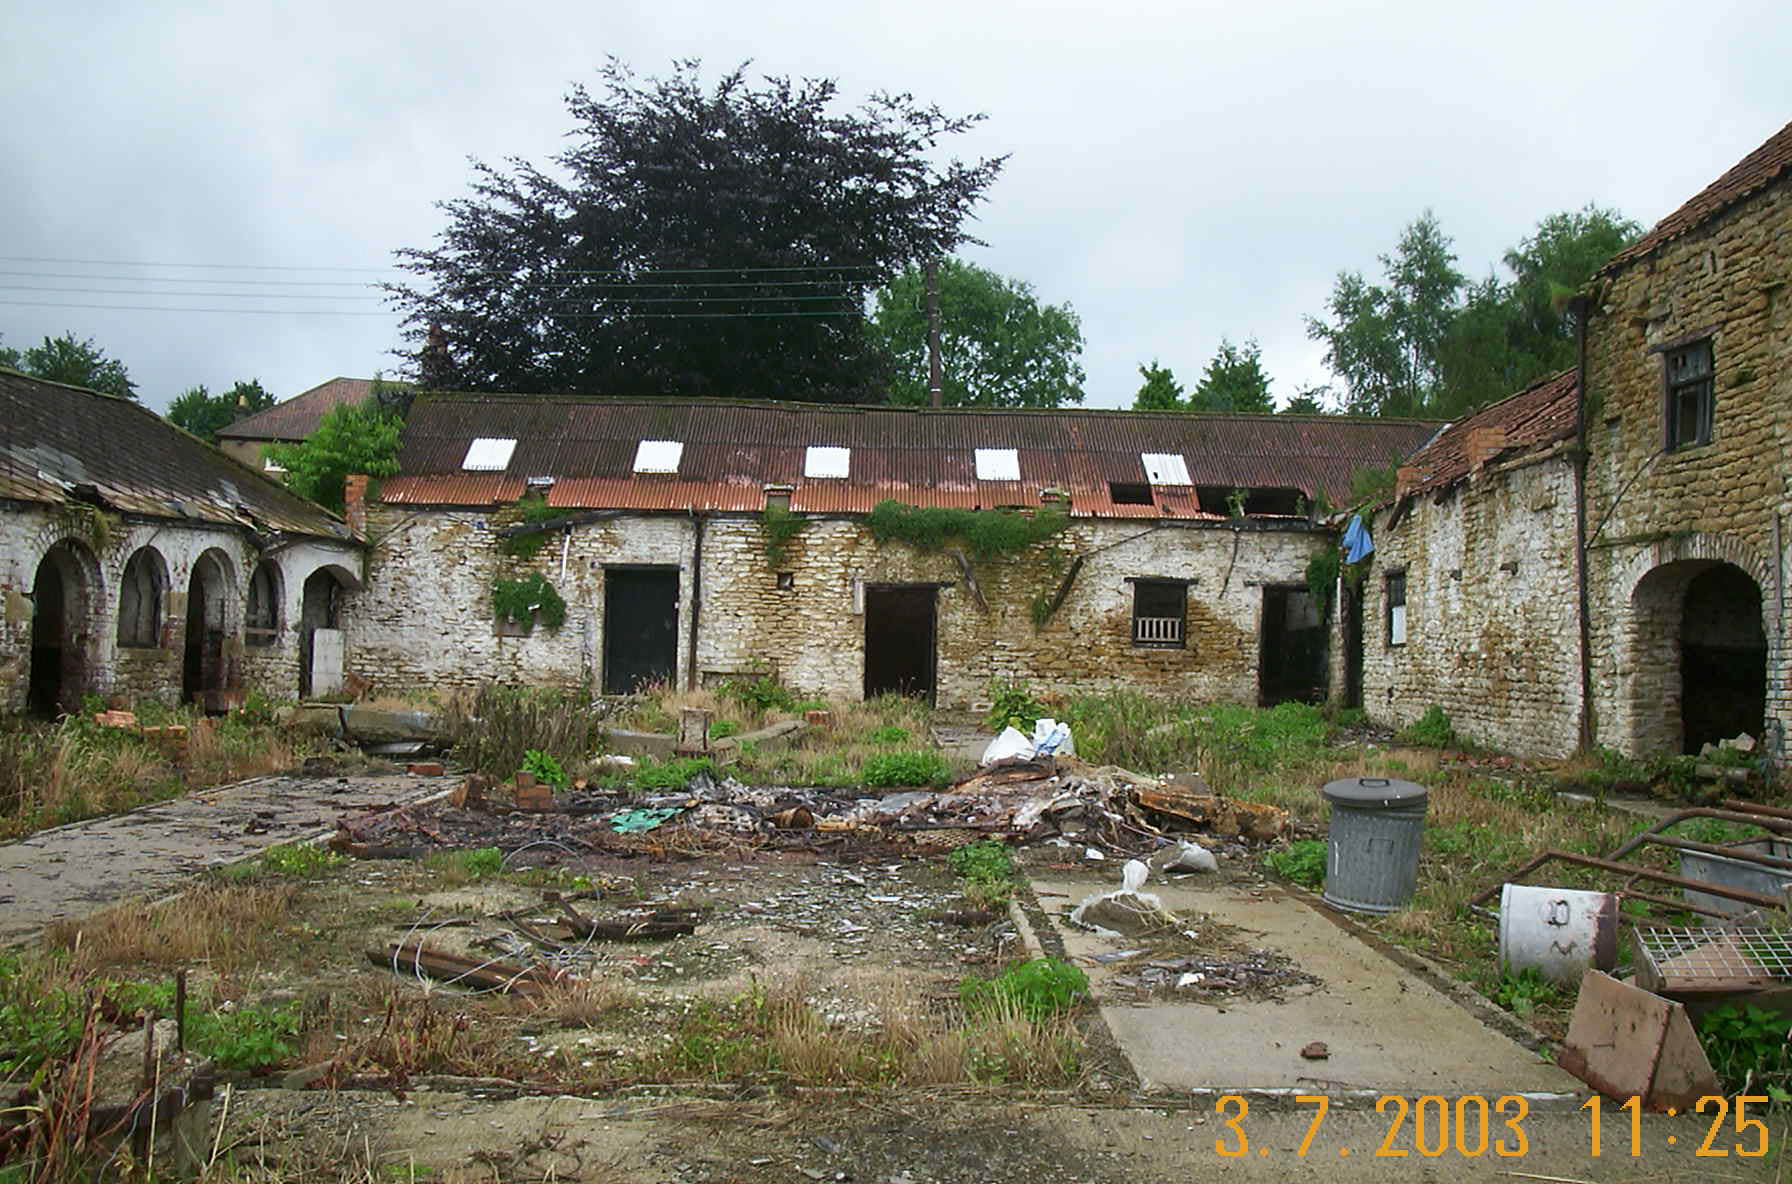 Lora farm buildings 2003